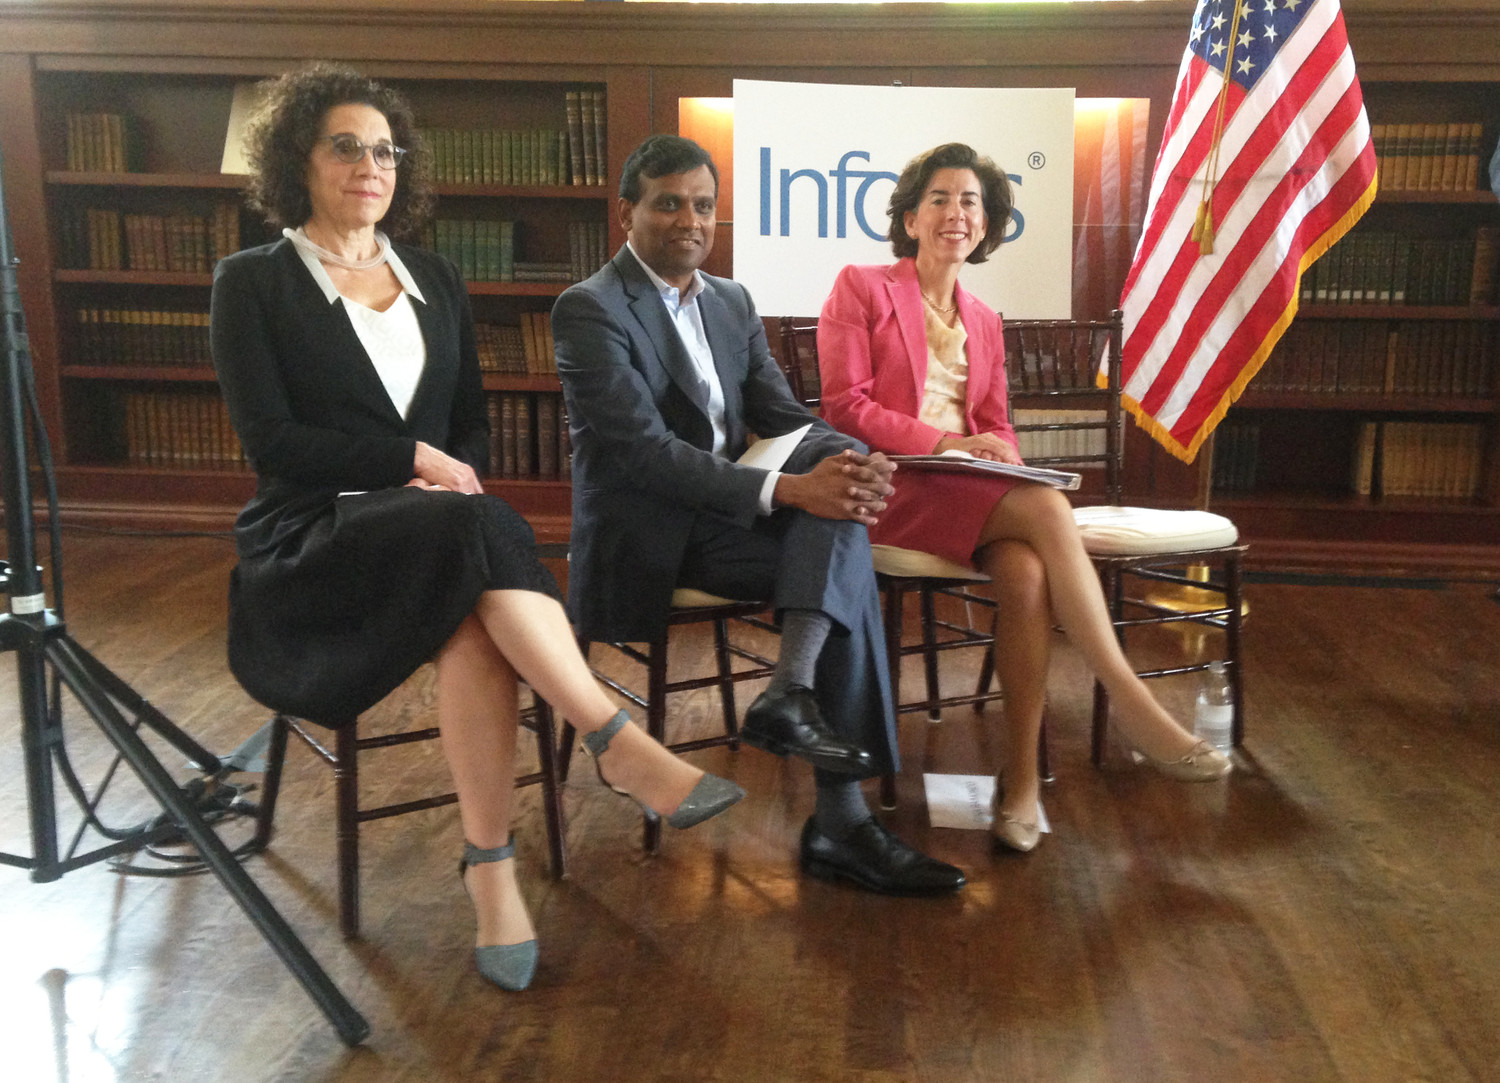 Rosanne Somerson, left, president of RISD, Rajiv Kumar, president and COO of Infosys, and Gov. Gina Raimondo.